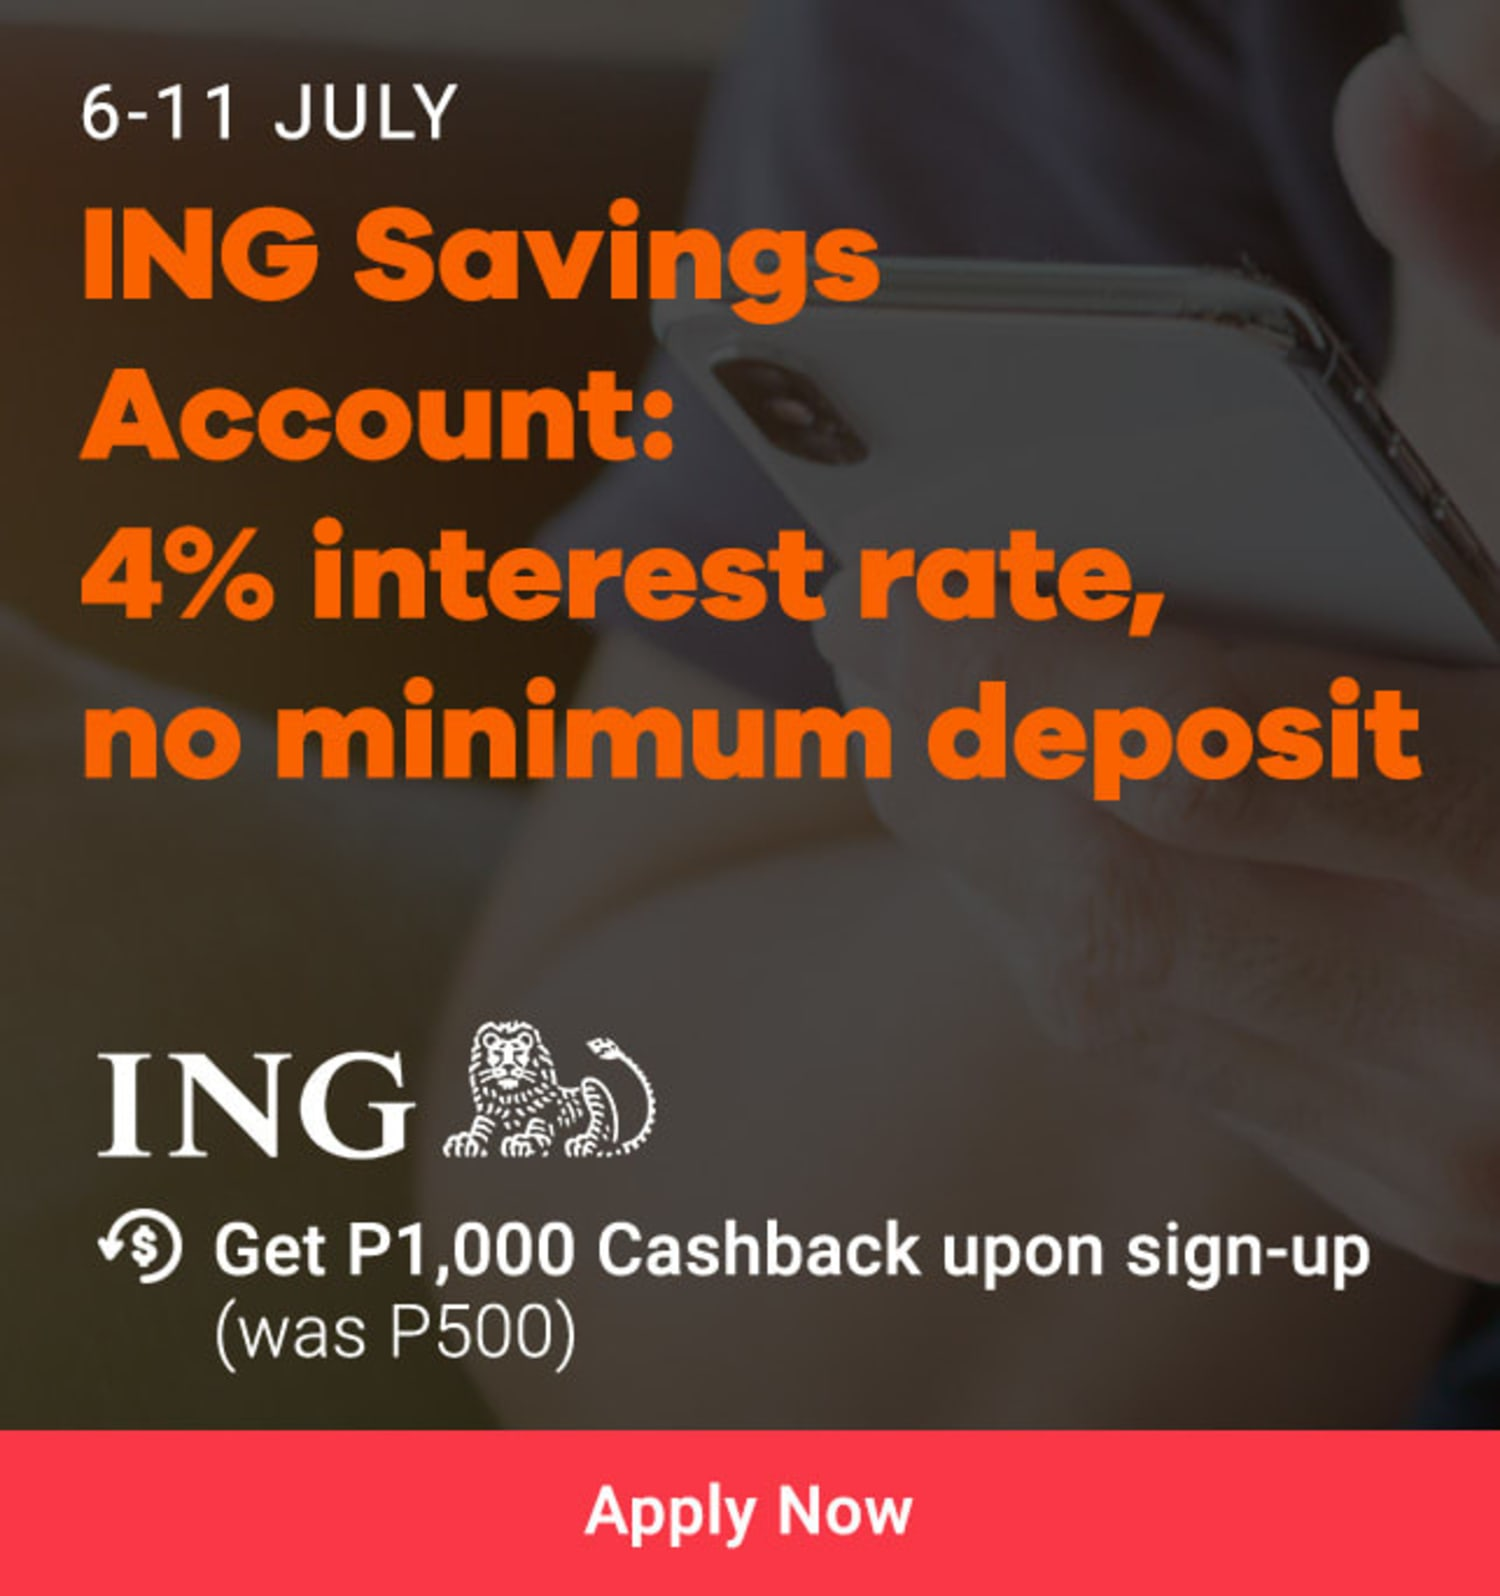 6 - 11 Jul | Apply for a ING Account and get P1,000 Cashback